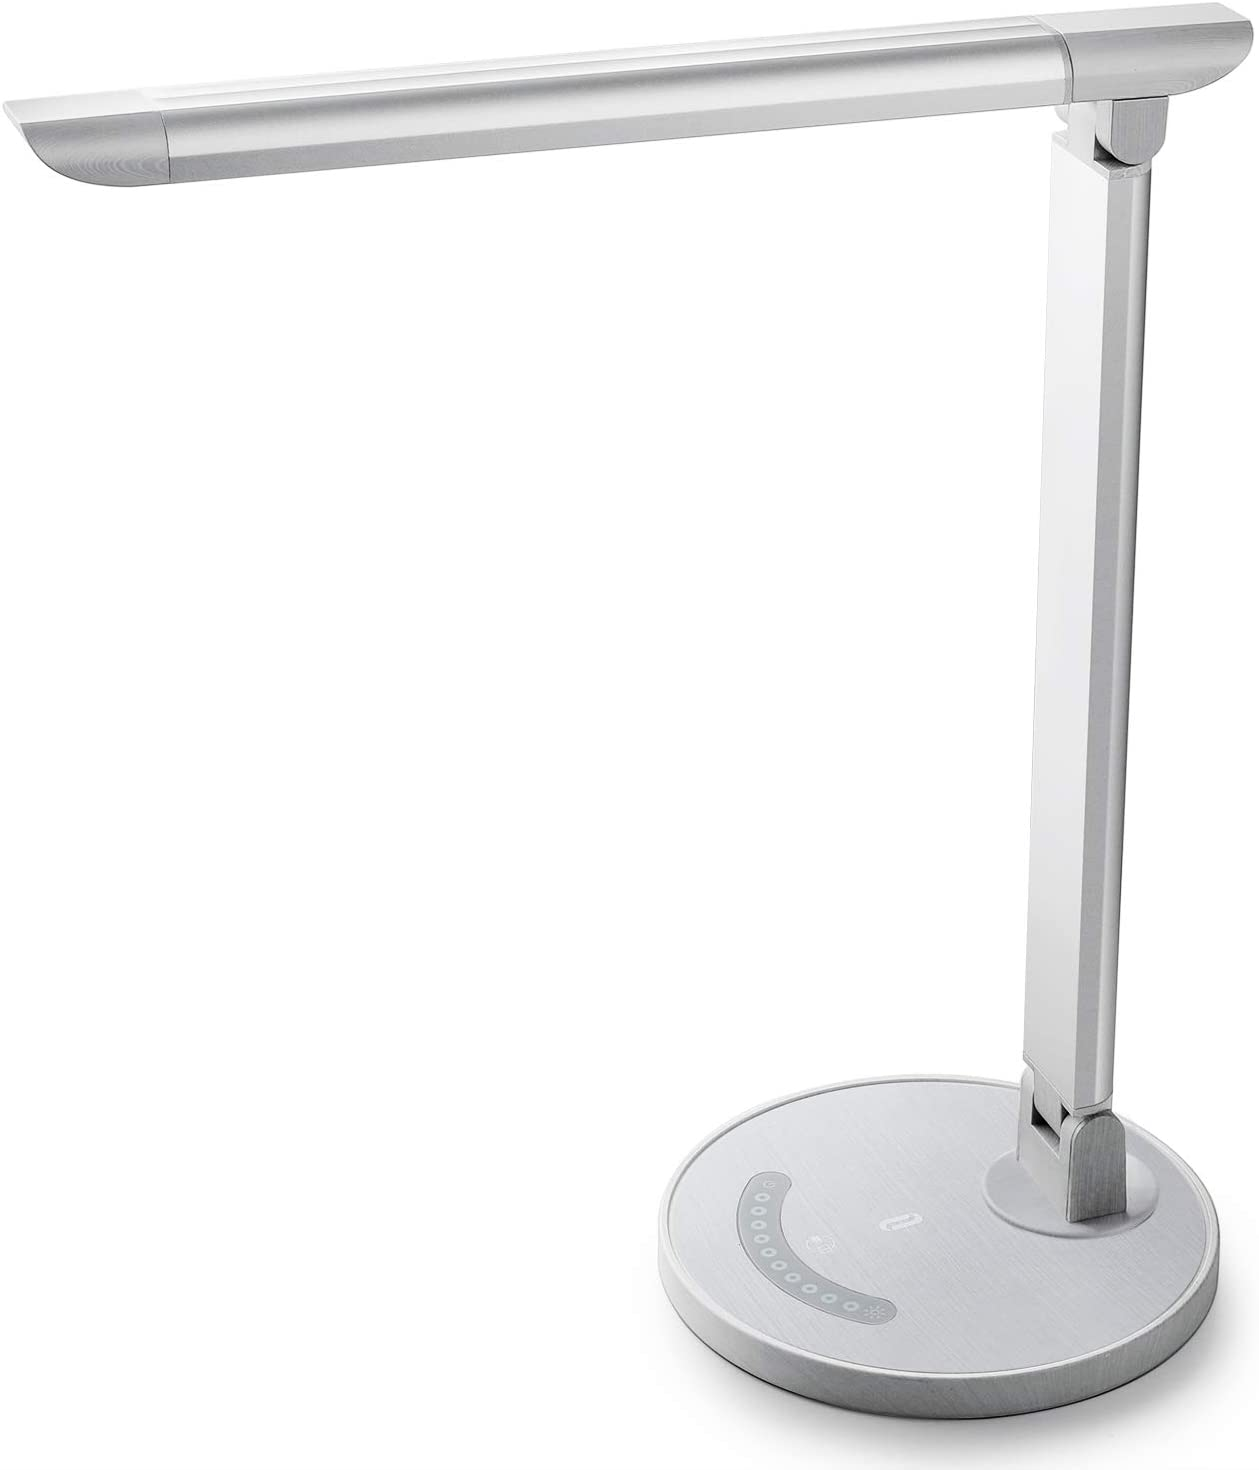 TaoTronics White Wood Grain LED Desk, Eye-Caring Table, Dimmable Office Lamp with USB Charging Port, 5 Lighting Modes with 7 Brightness Levels, Touch Control, 12W